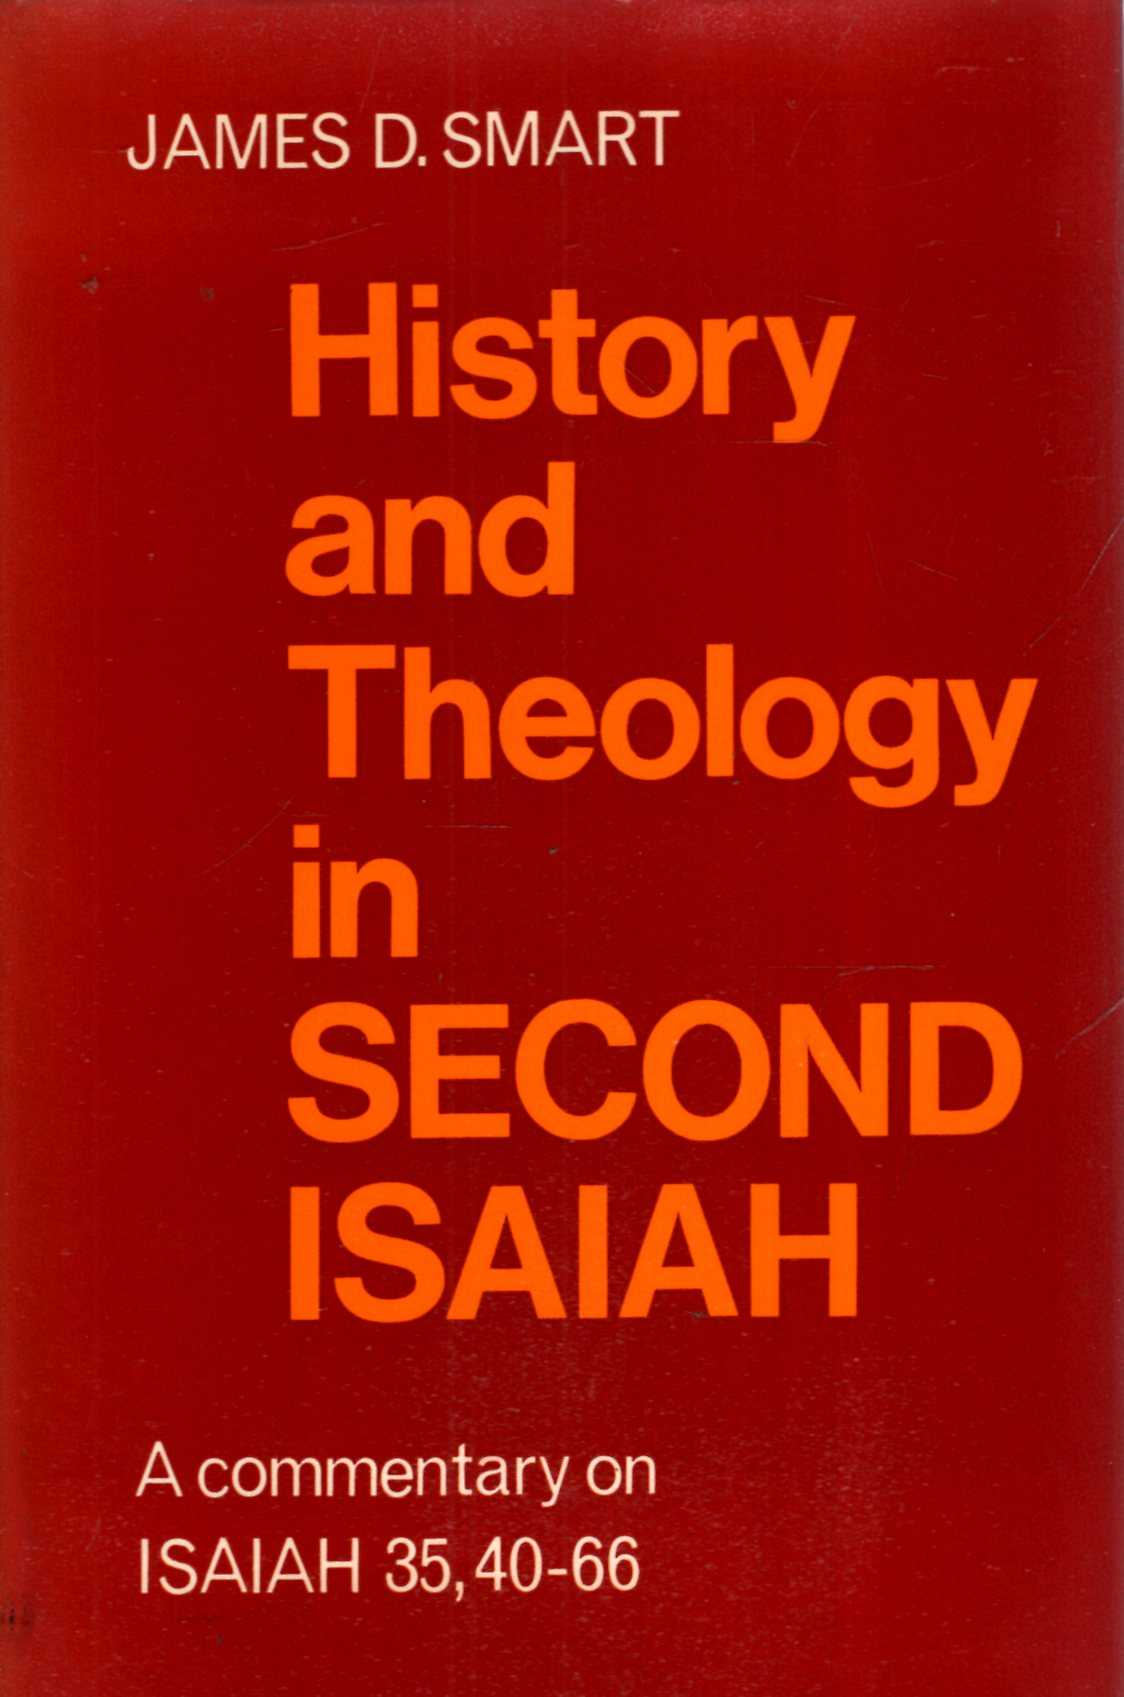 Image for History and Theology in Second Isaiah, a commentary on Isaiah 35, 40-66